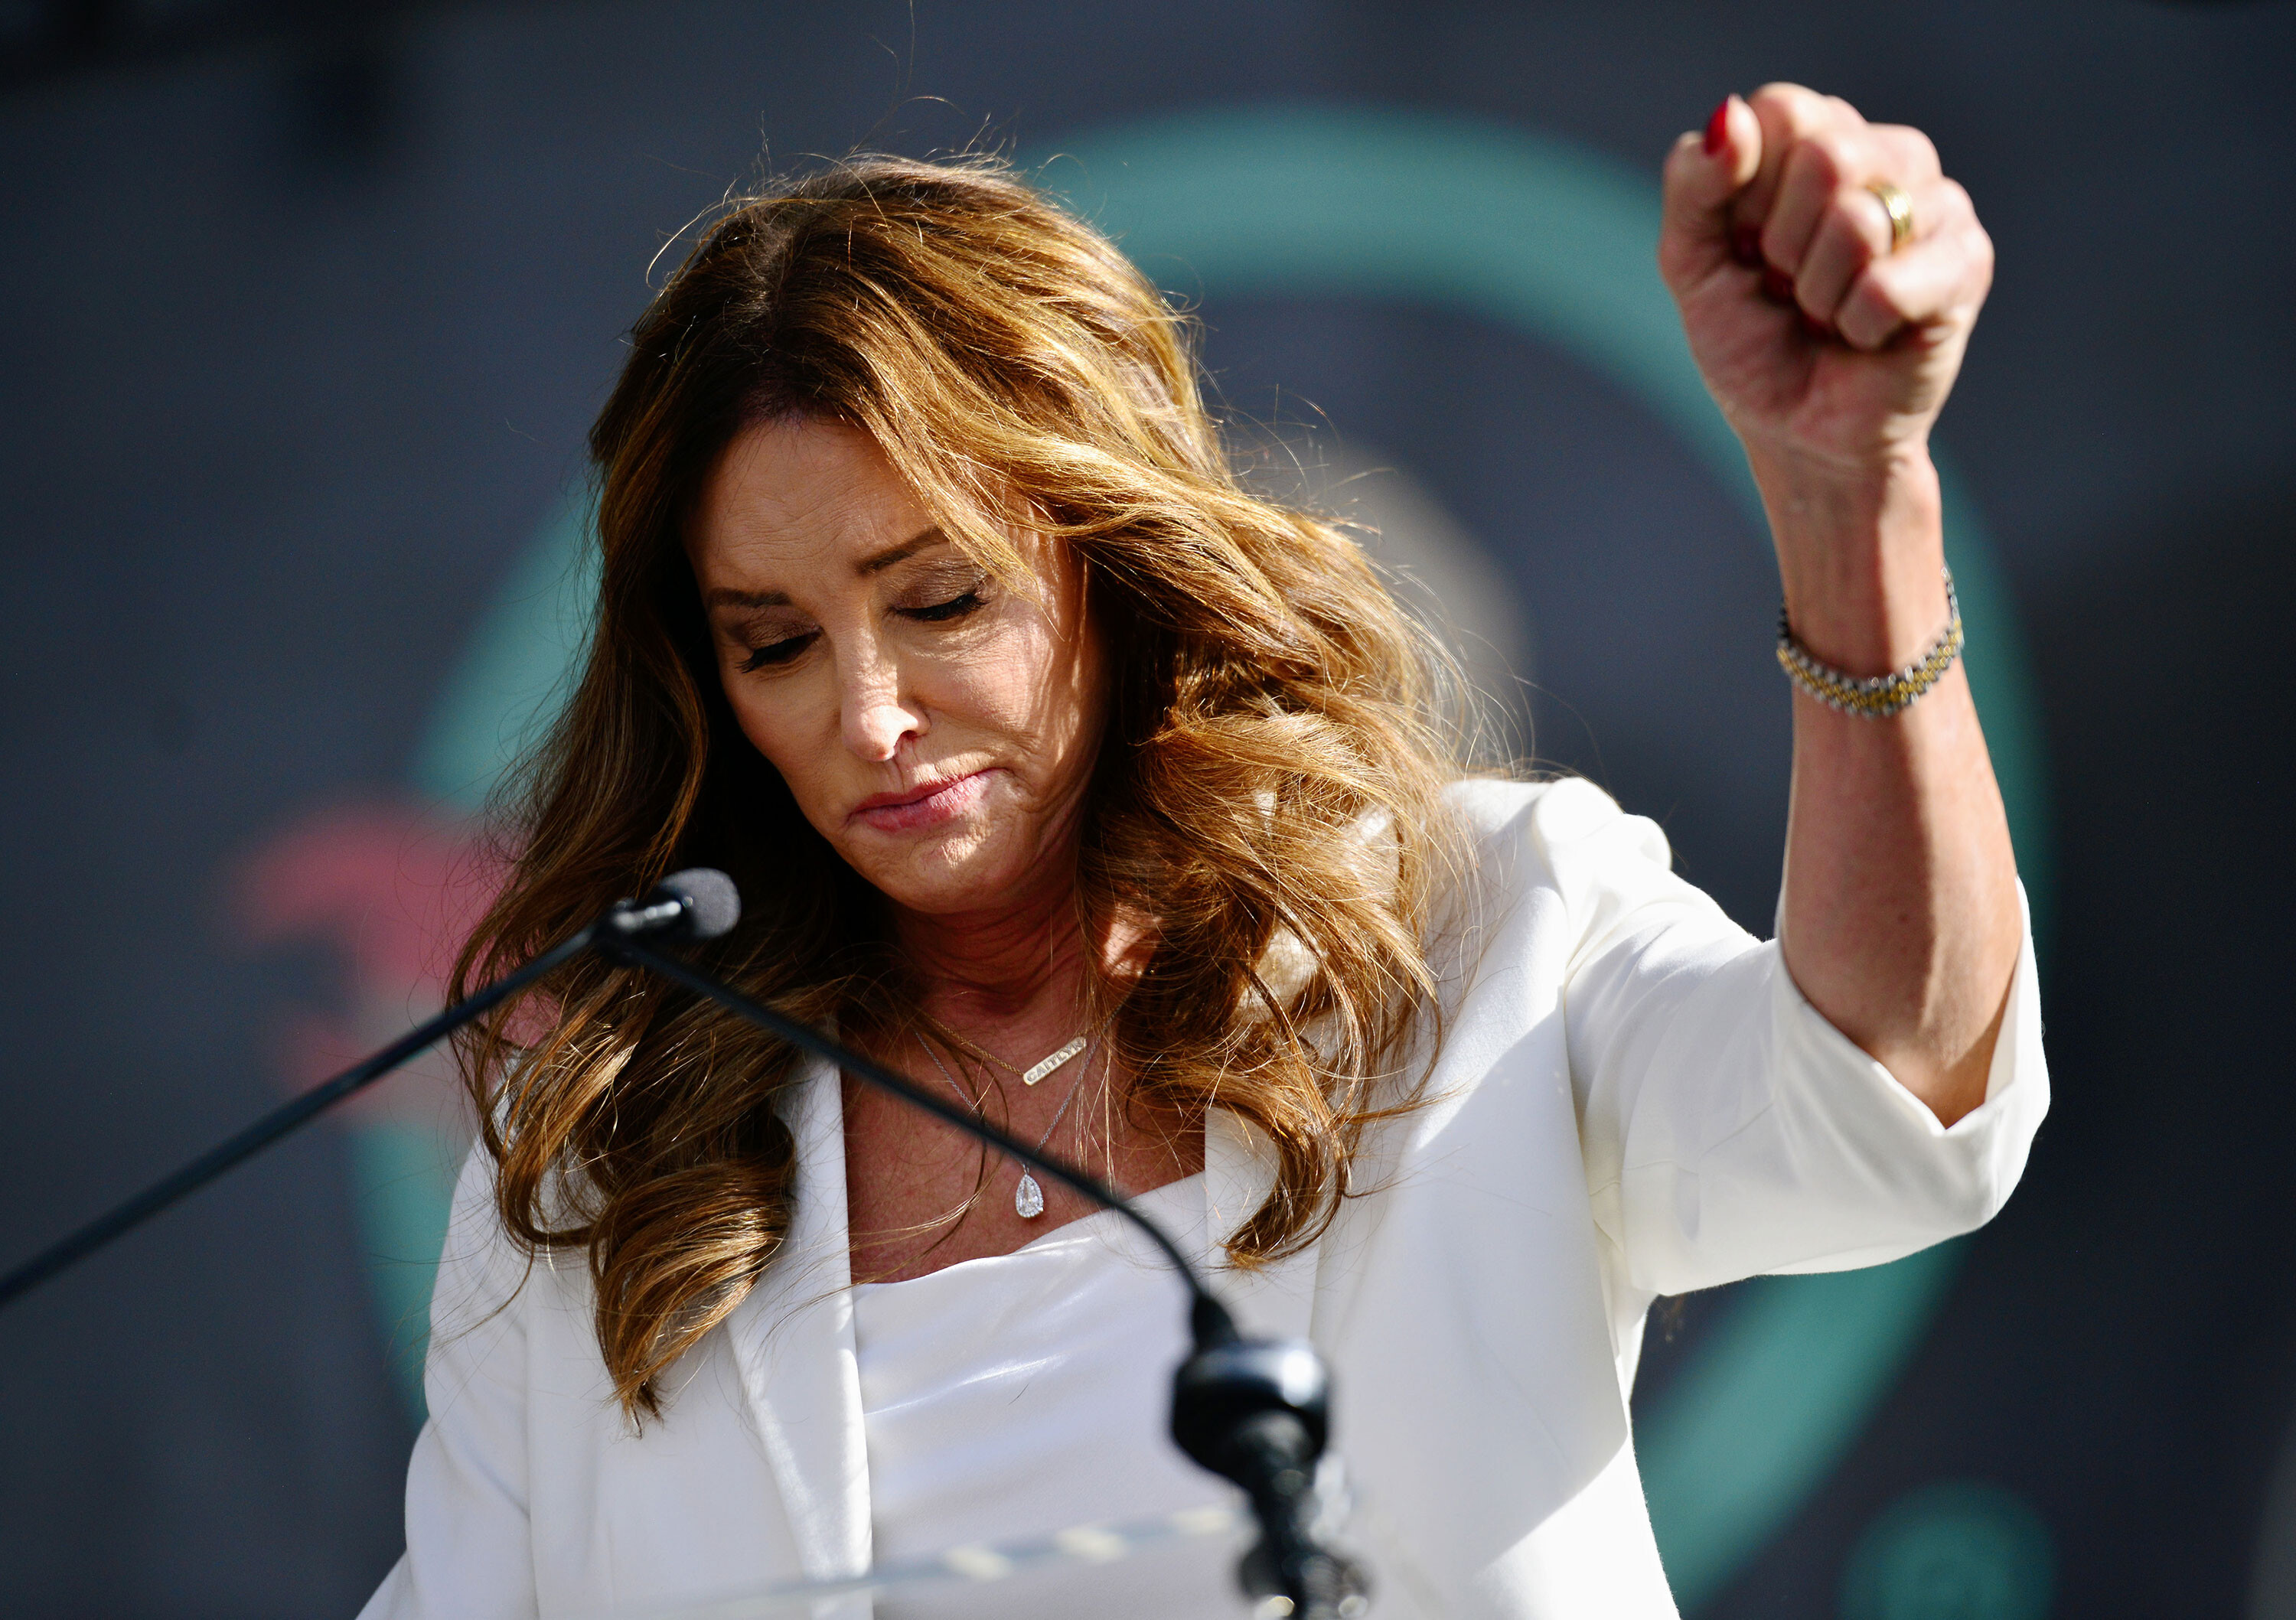 Caitlyn Jenner defends out-of-state travel ahead of California recall election